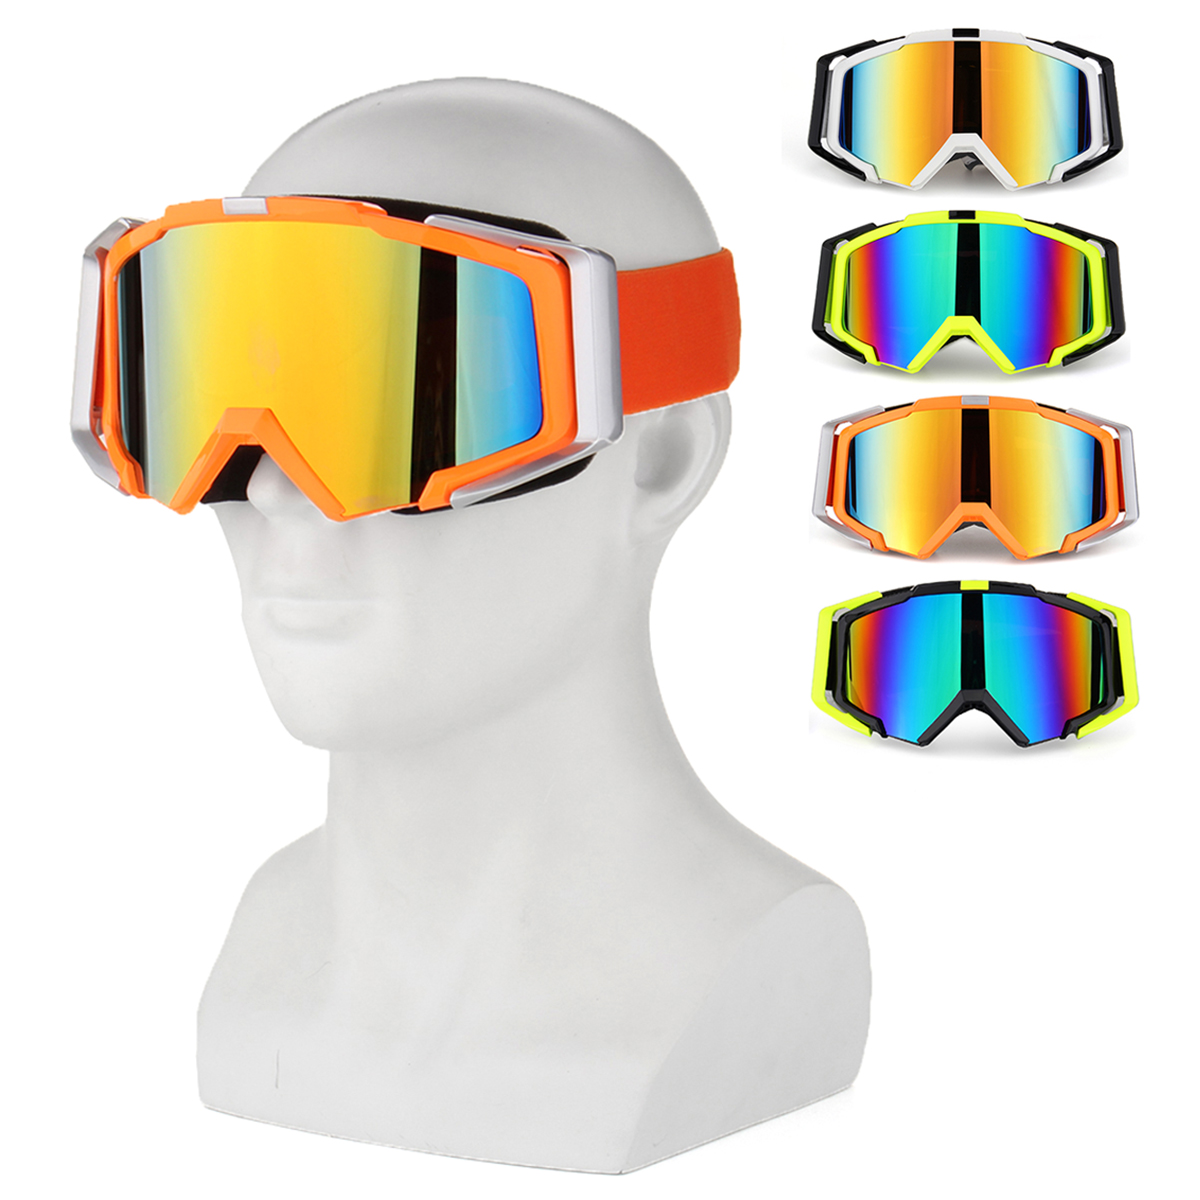 TYX76 Outdoor Skiing Skating Goggles Snowmobile Glasses Windproof Anti-Fog UV Protection For Men Wom